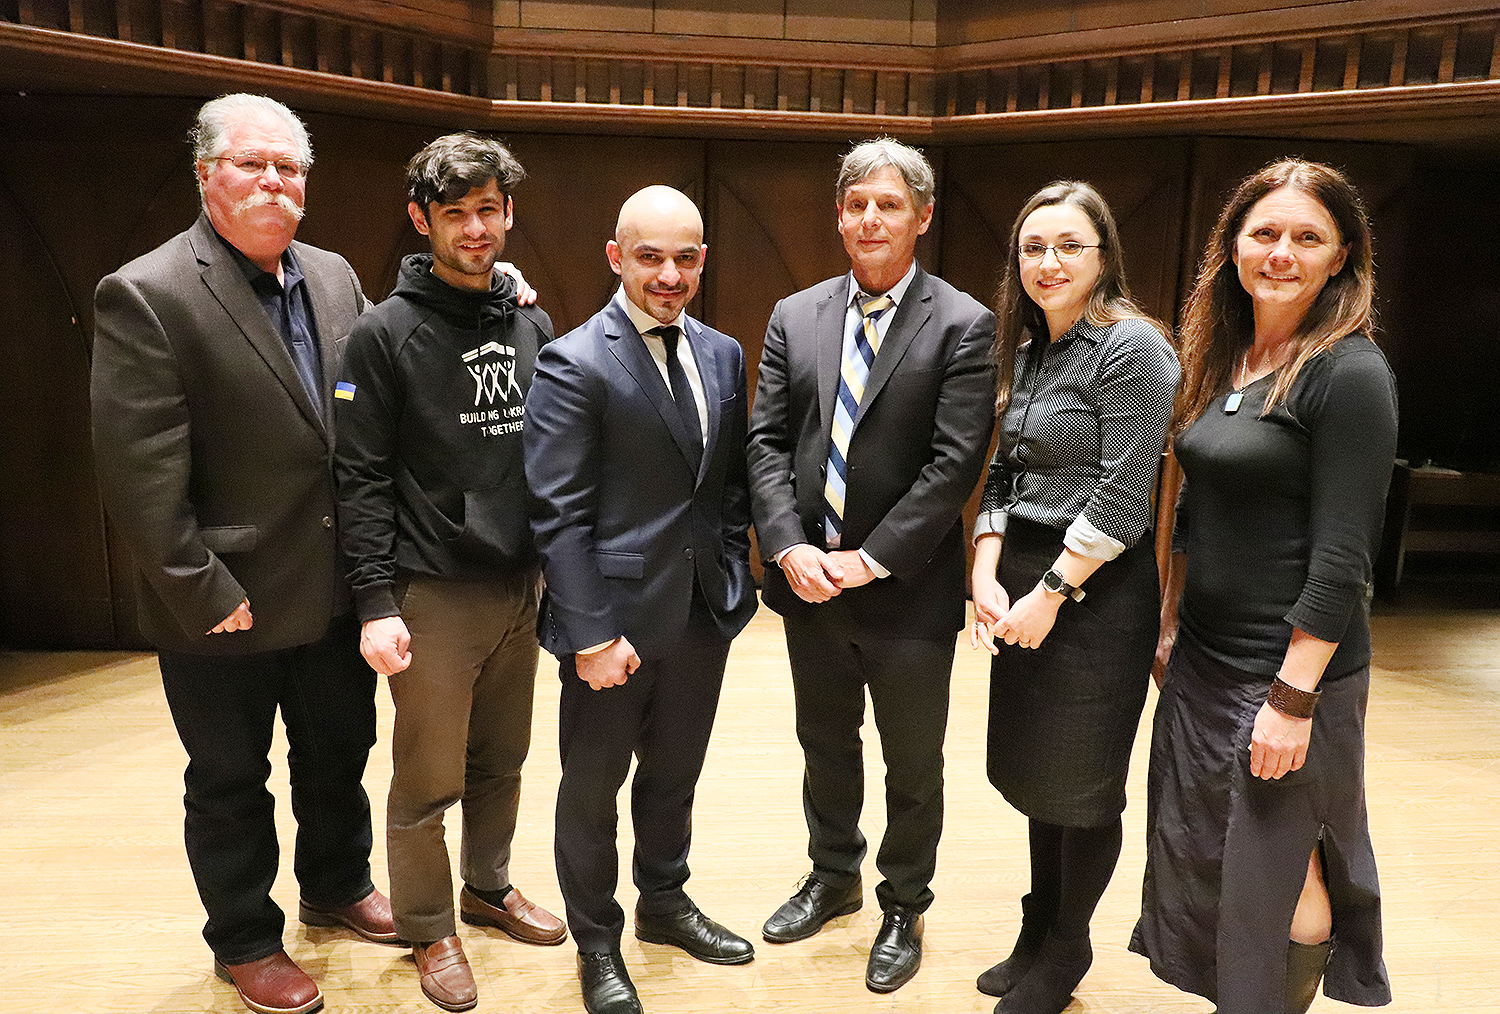 Pictured from left are Barry Chernoff, director of the College of the Environment; Yurko Didula, Mustafa Nayyem, Daniel Hryhorczuk, event moderator Olena Lennon and Katja Kolcio. Lennon is an adjunct professor of political science at the University of New Haven.